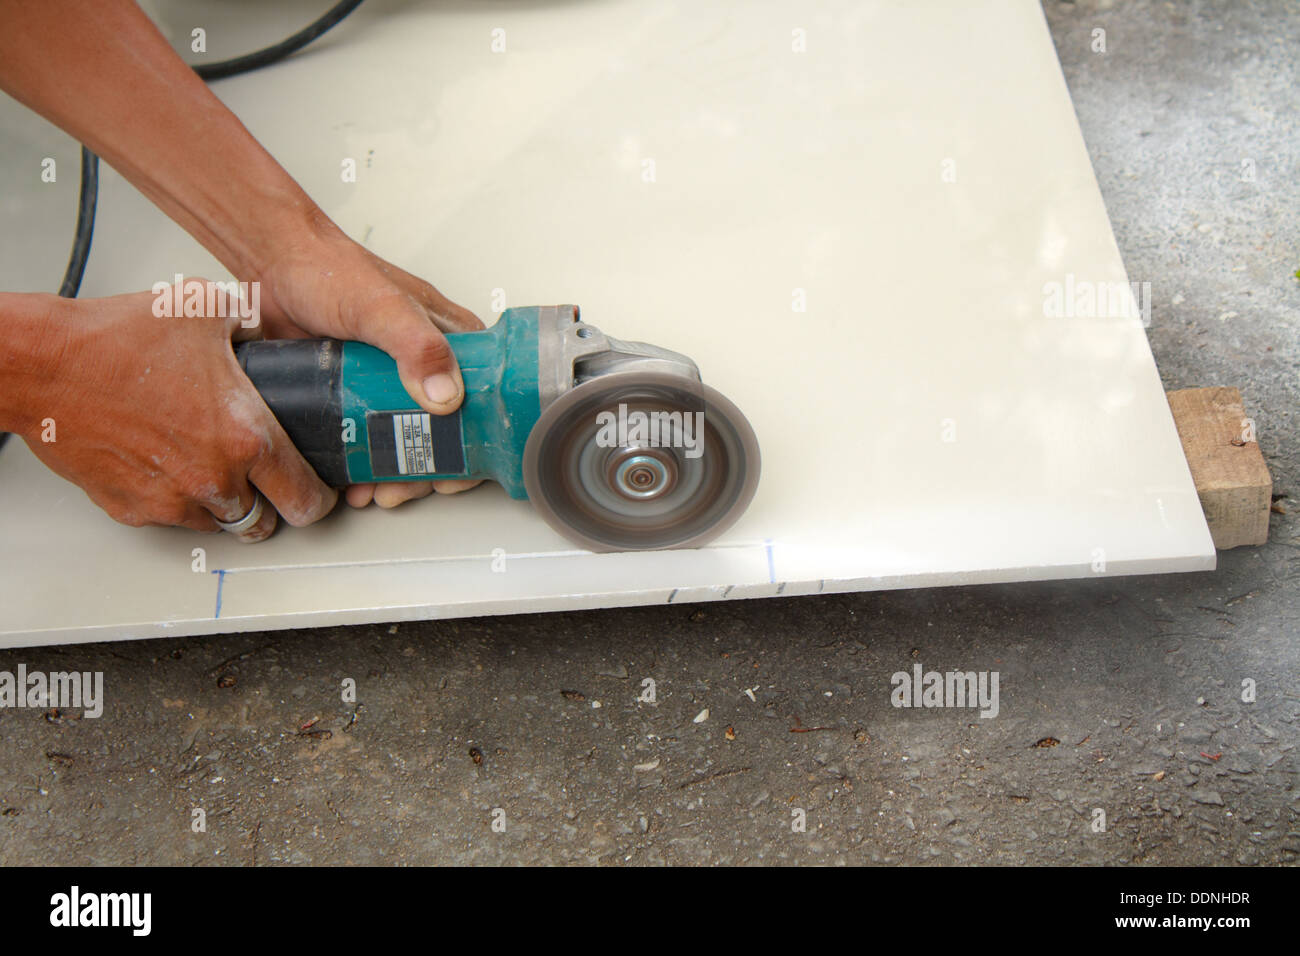 Workers are using tools for cutting tile stock photo royalty free workers are using tools for cutting tile dailygadgetfo Images